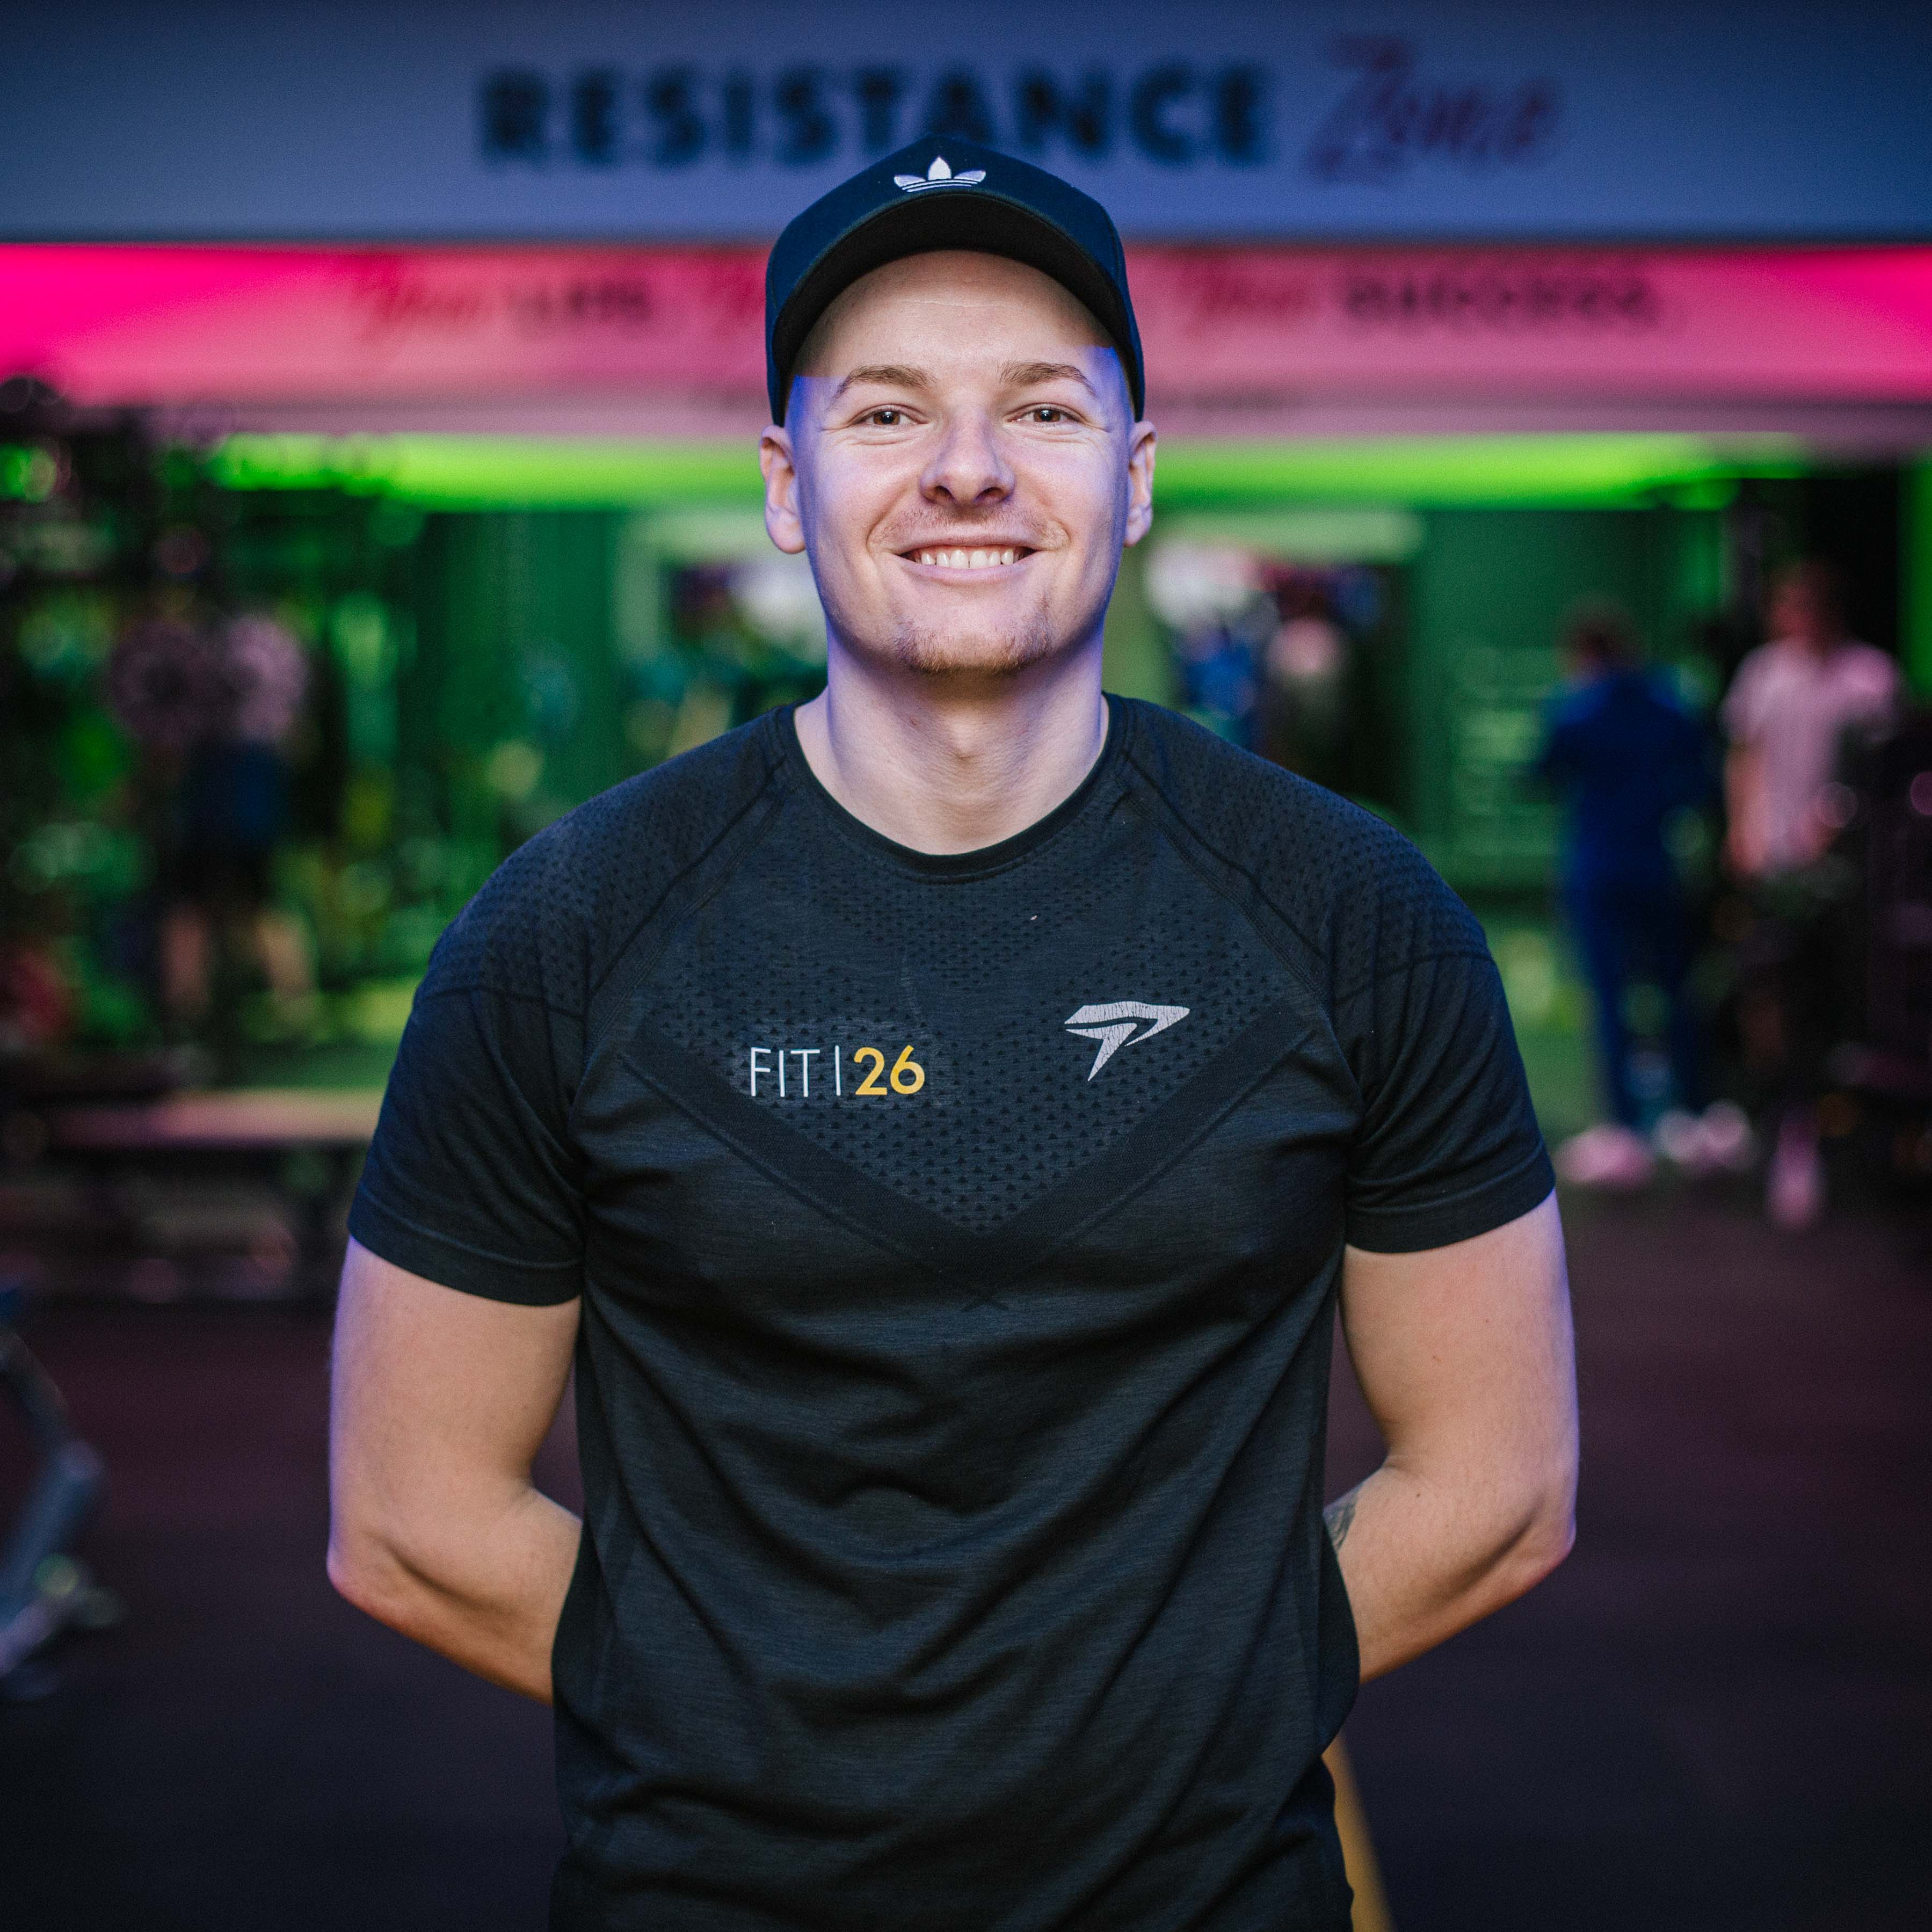 FIT26 Gym Manager Harry